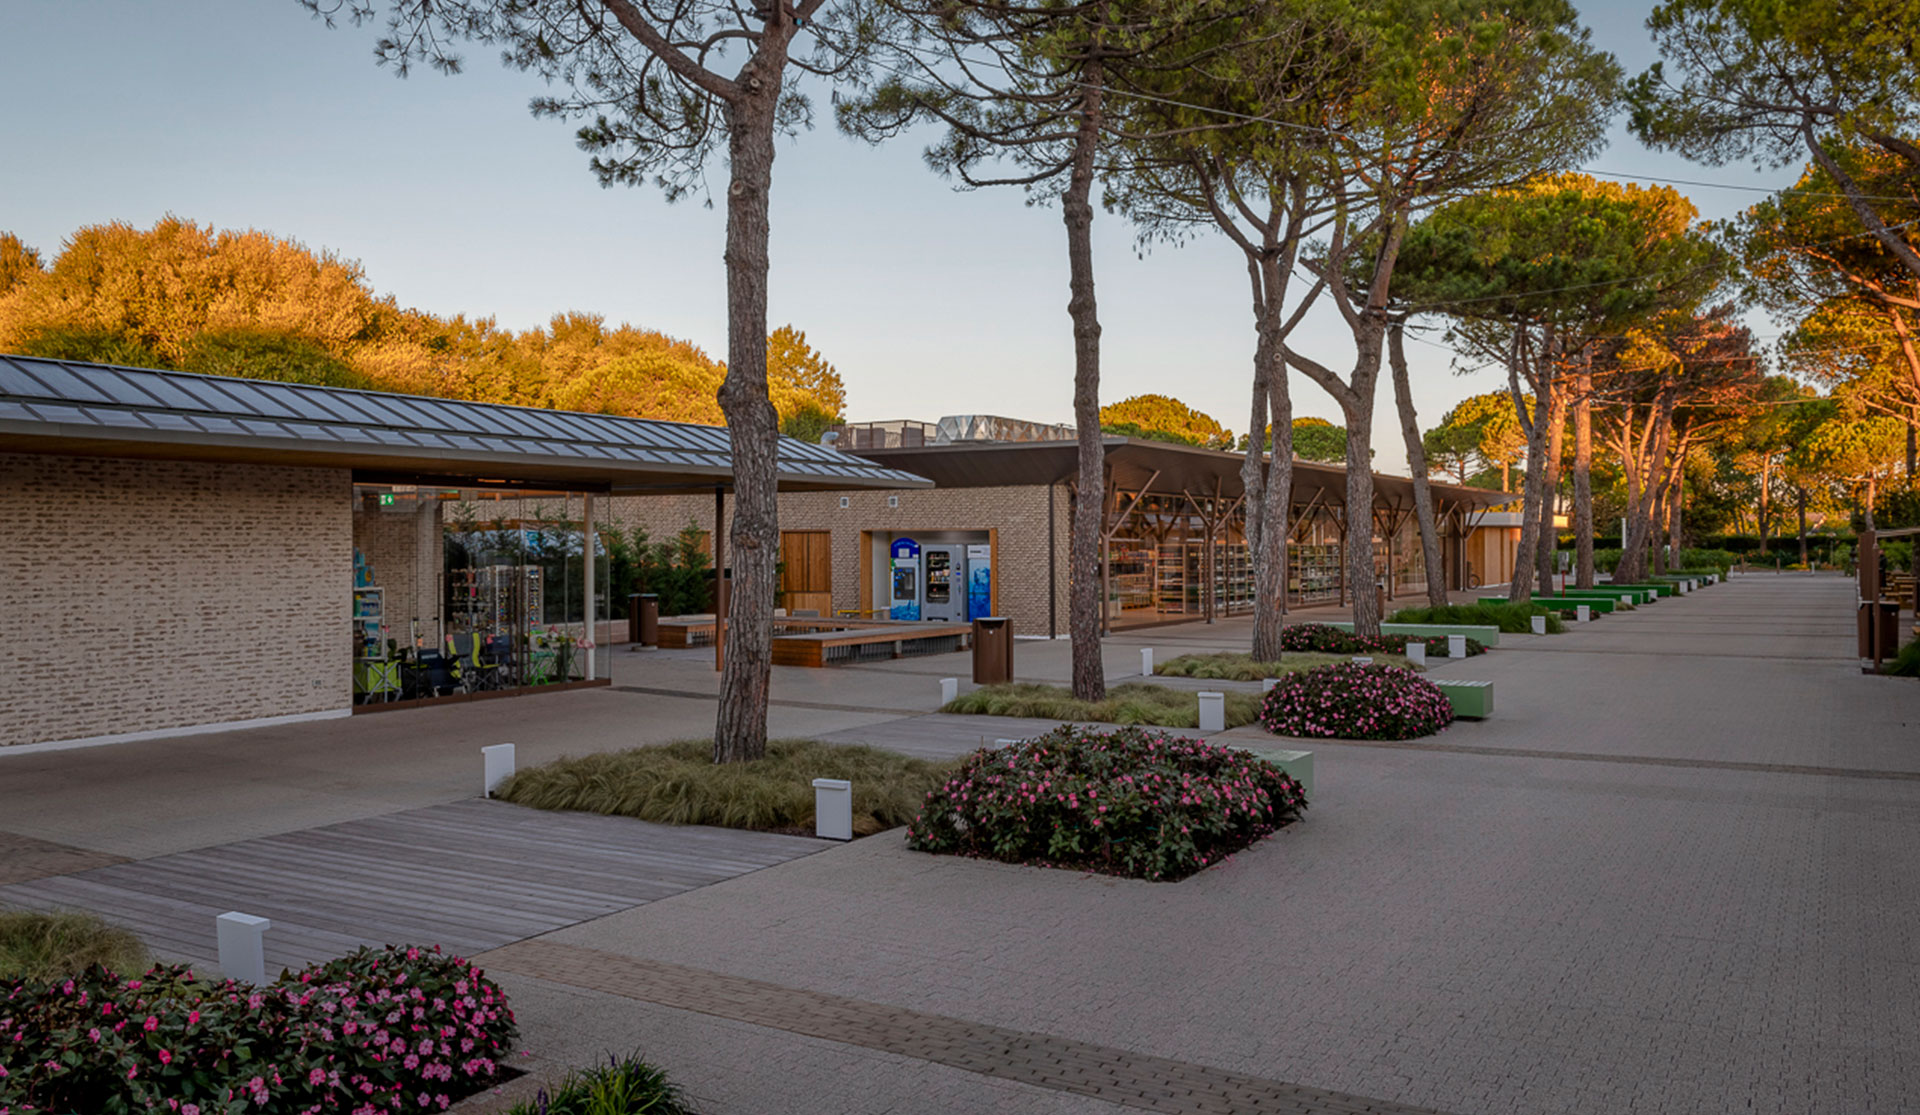 Covered market, Camping - Marina di Venezia (IT)